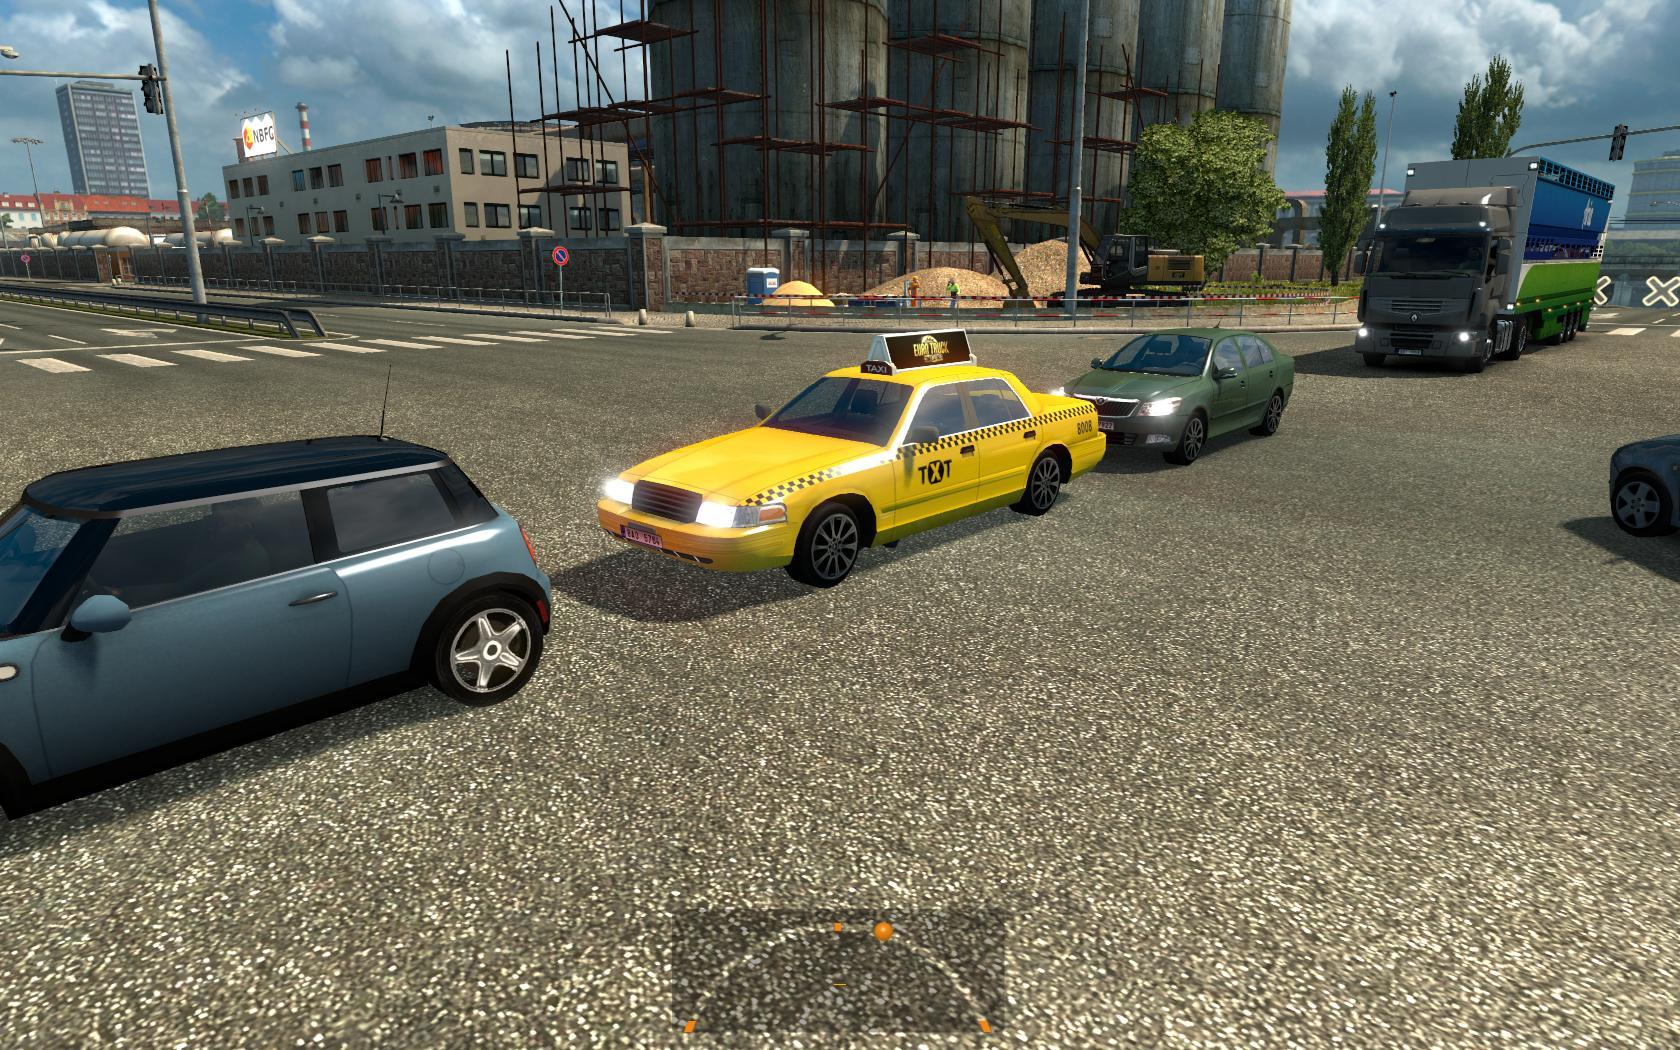 two-taxis-in-traffic-1-24-0-beta_2